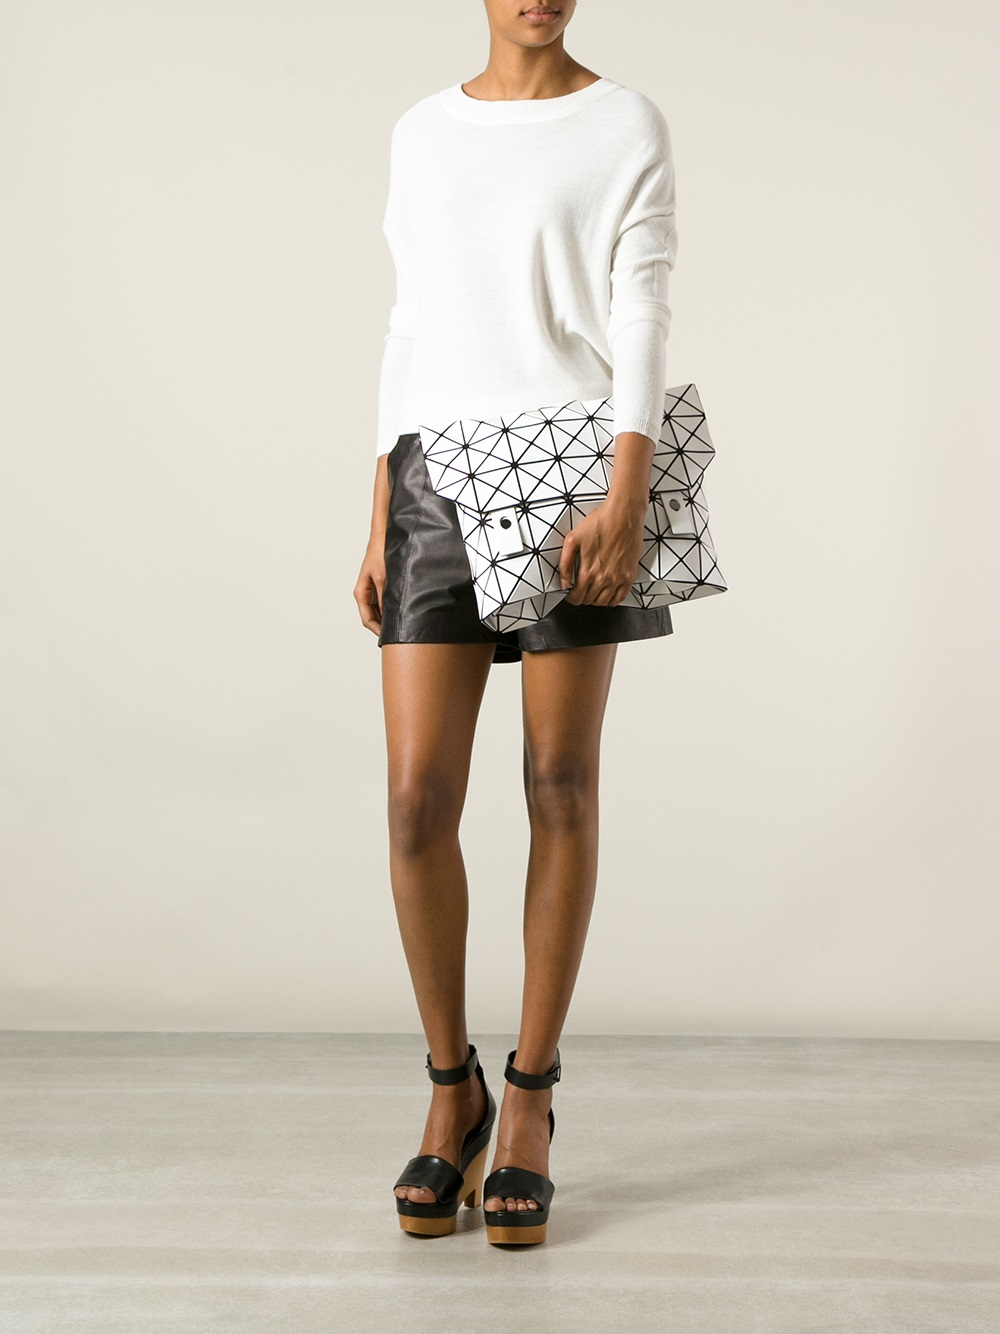 lyst bao bao issey miyake large prism clutch in white